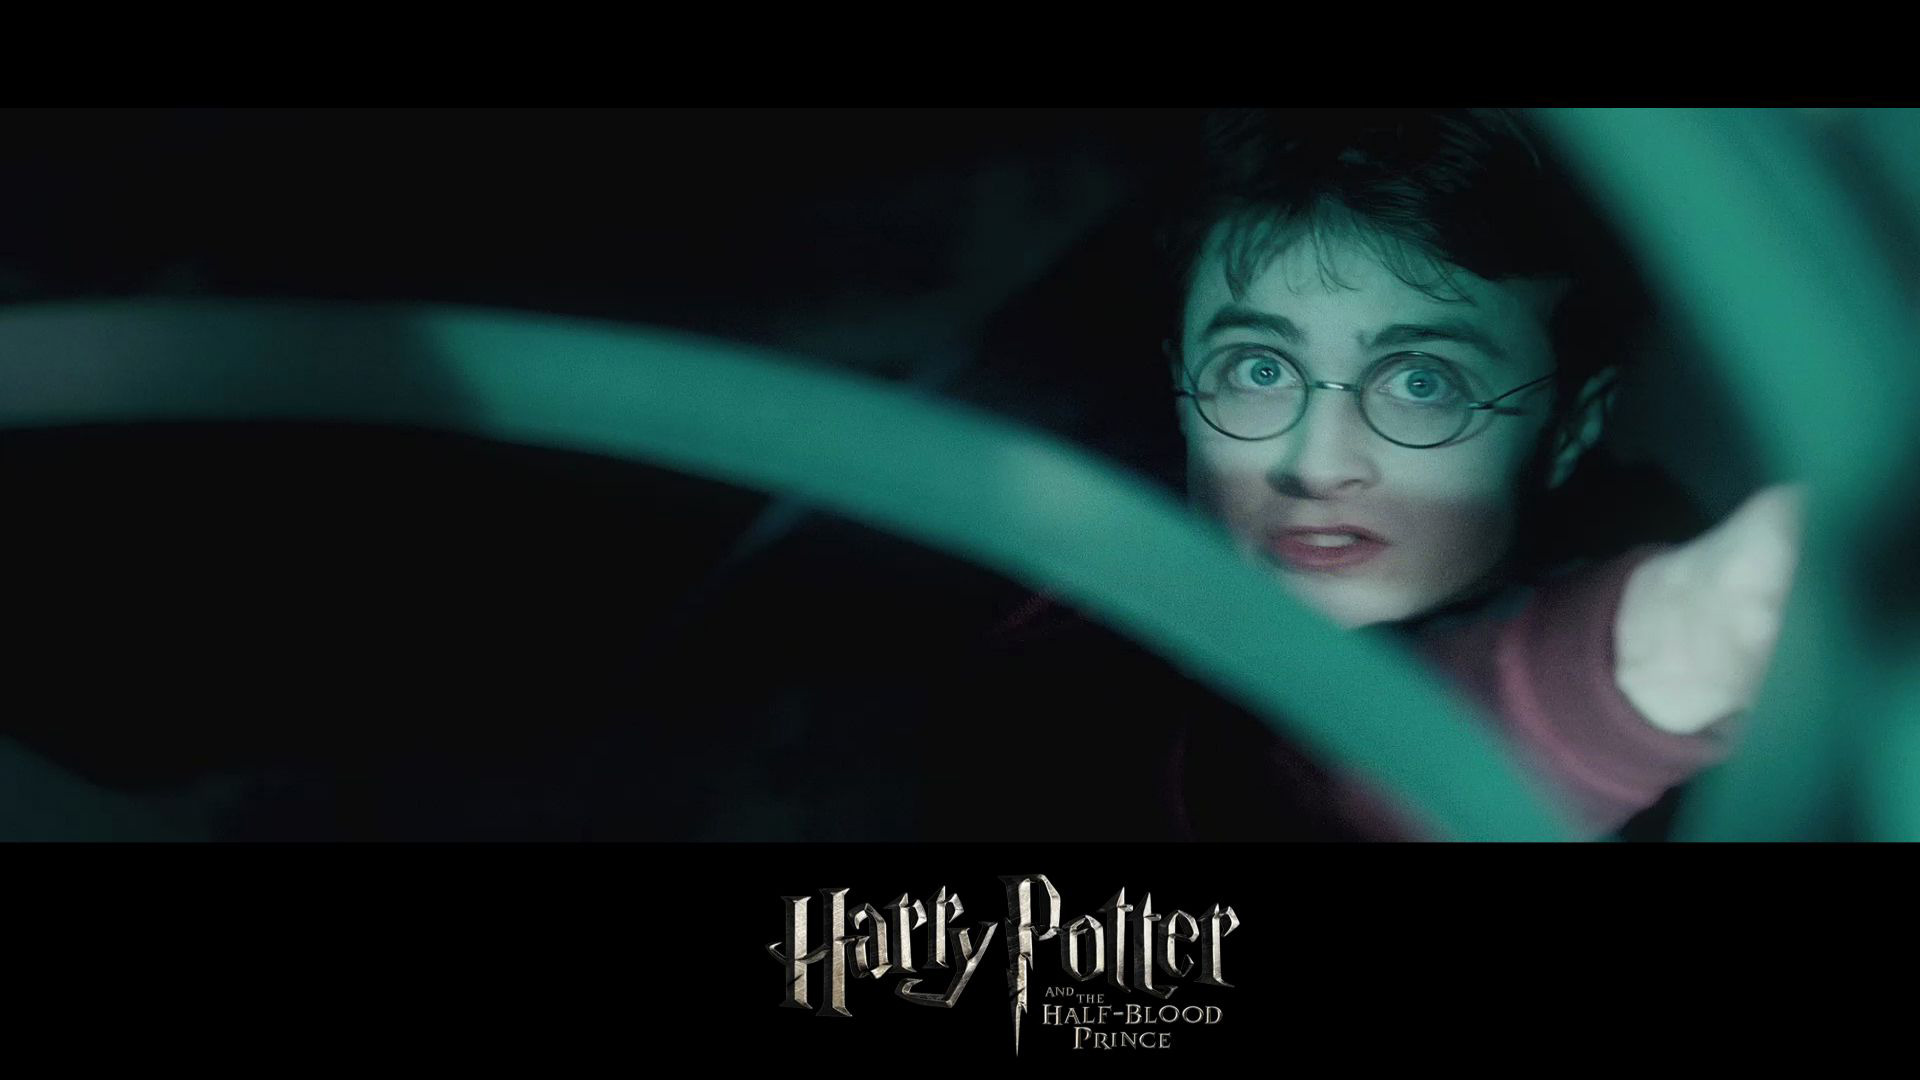 Amazing New Hd Free Wallpapers For Harry Potter Free